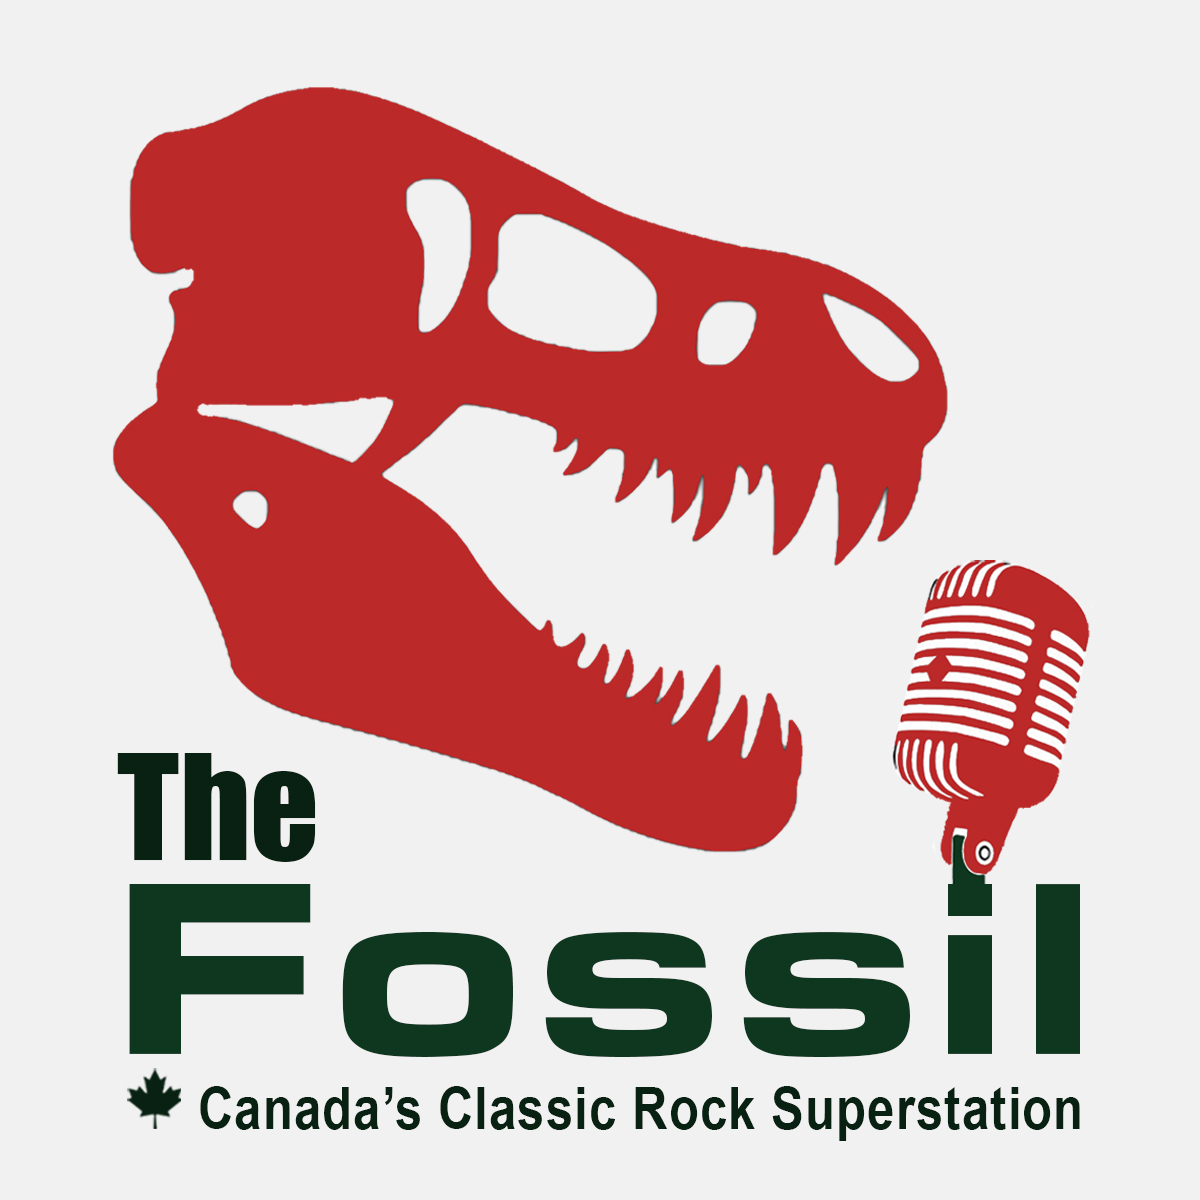 The Fossil logo